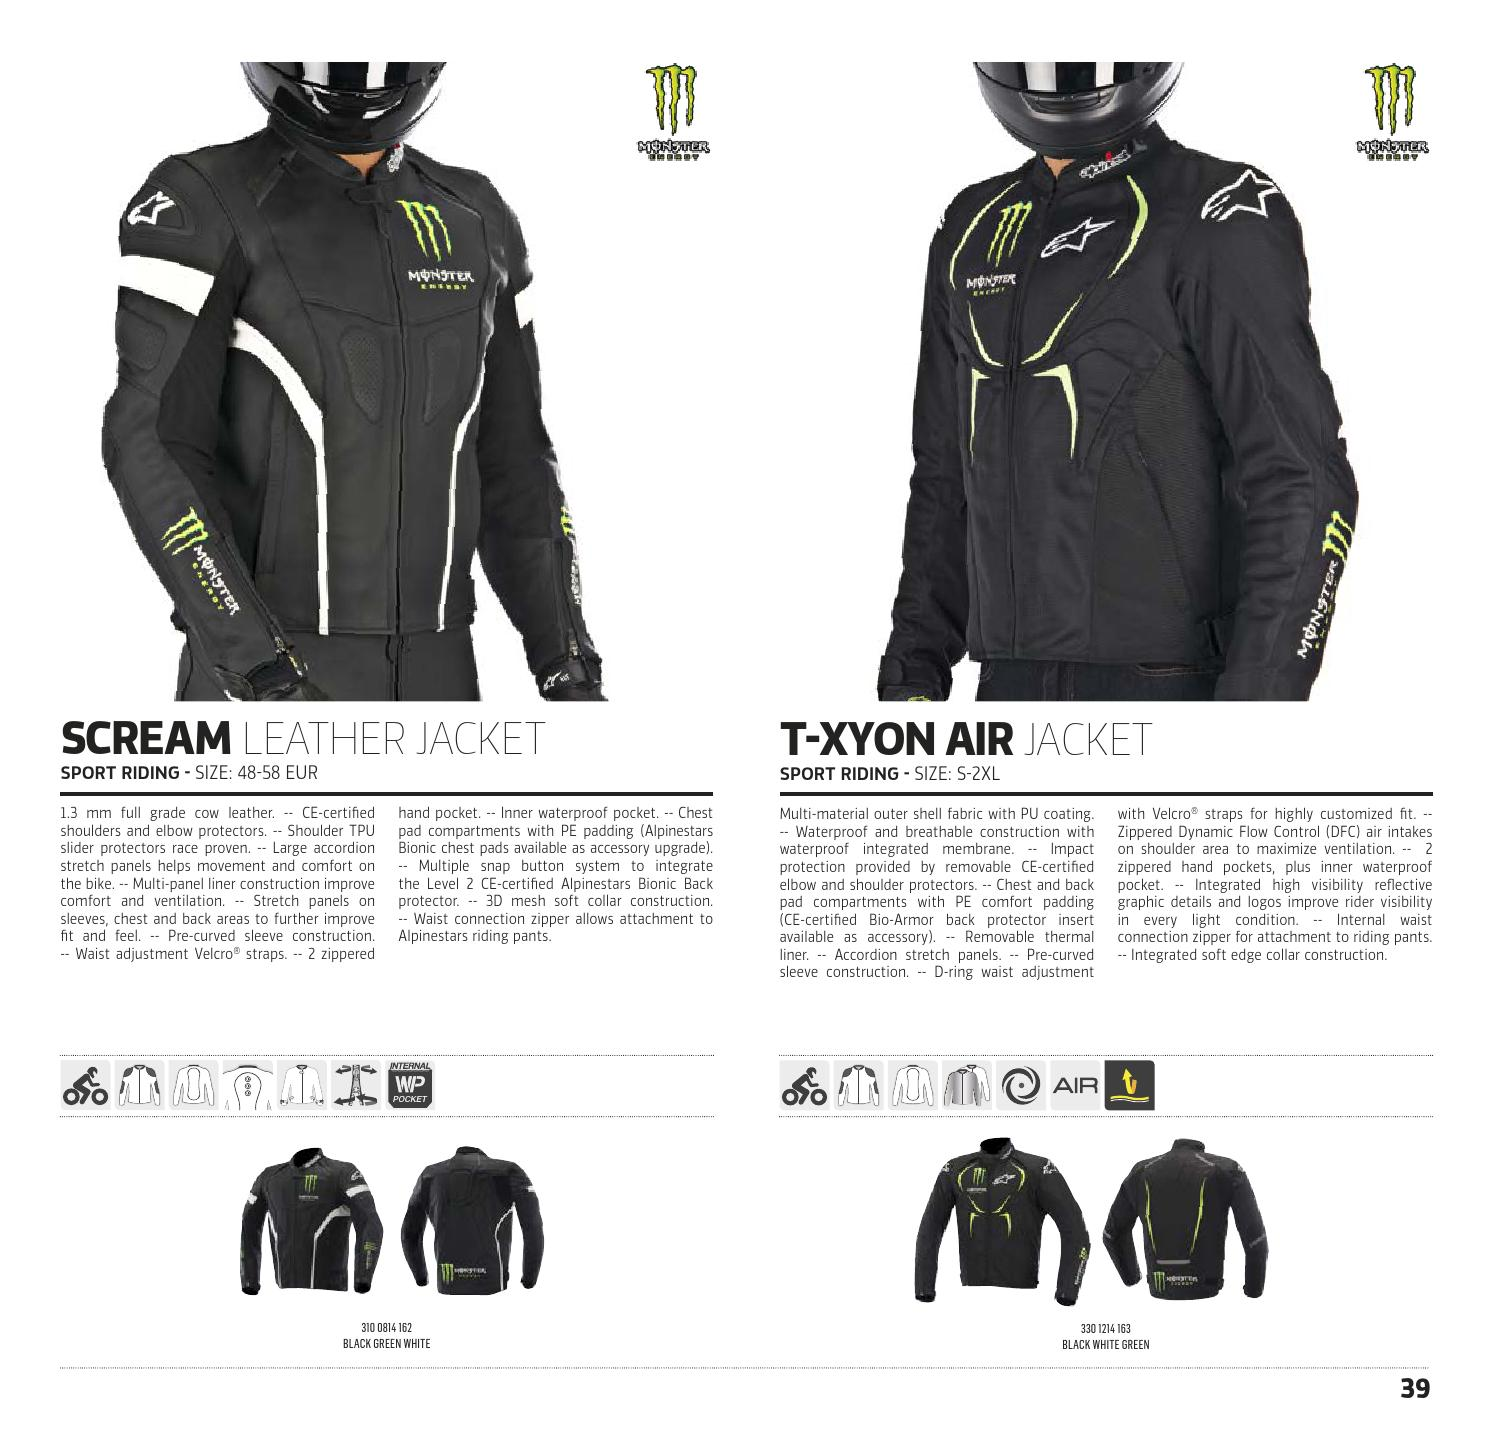 Alpinestars Technical Road Apparel Catalogue 2015, USA by